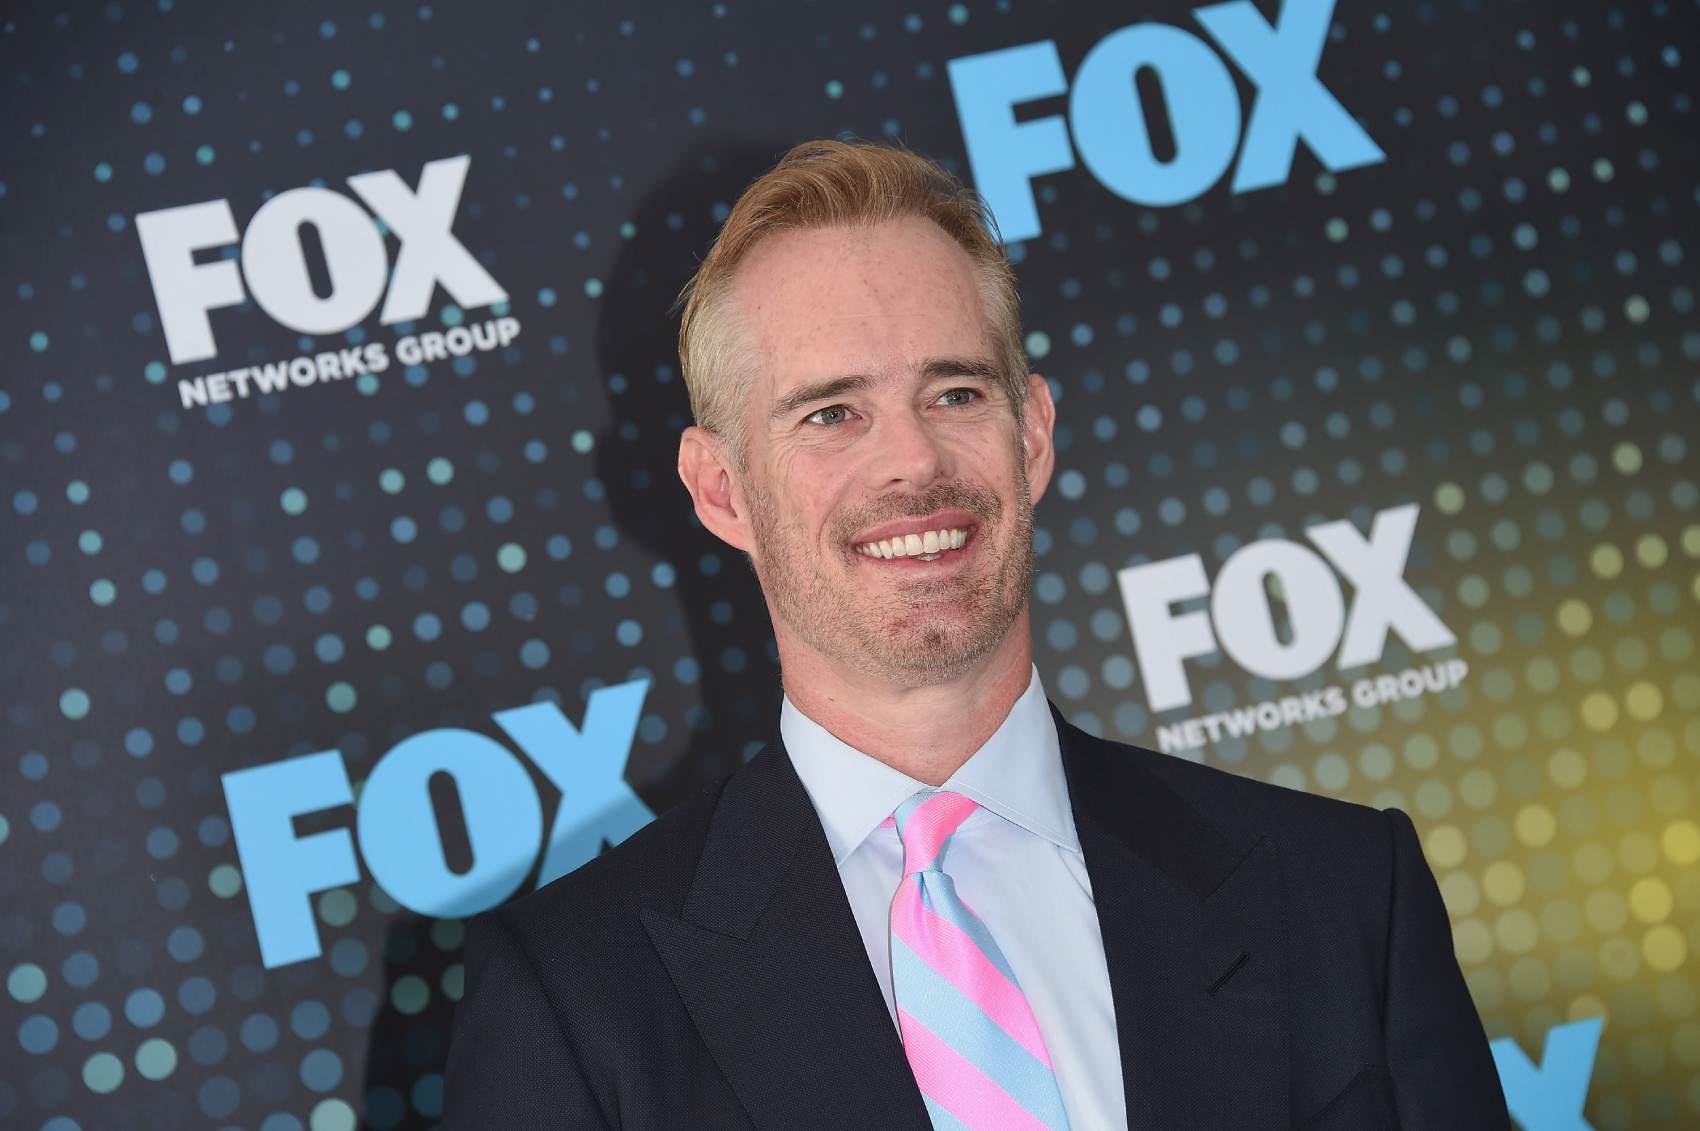 While many sports broadcasters have to watch what they say in the moment, fans are bringing up comments made by Joe Buck from 16 years ago.